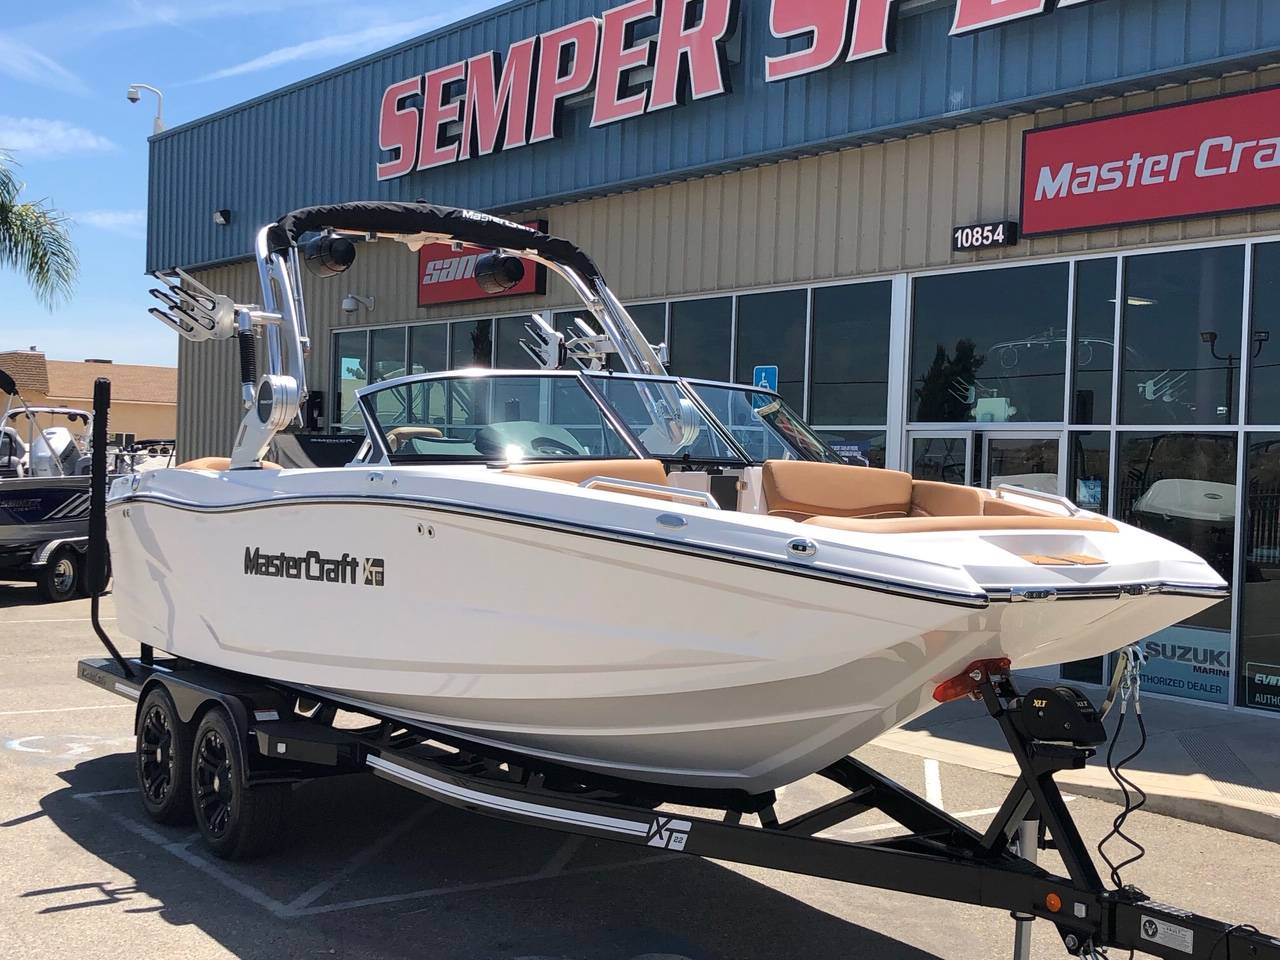 2019 Mastercraft XT22 in Madera, California - Photo 2